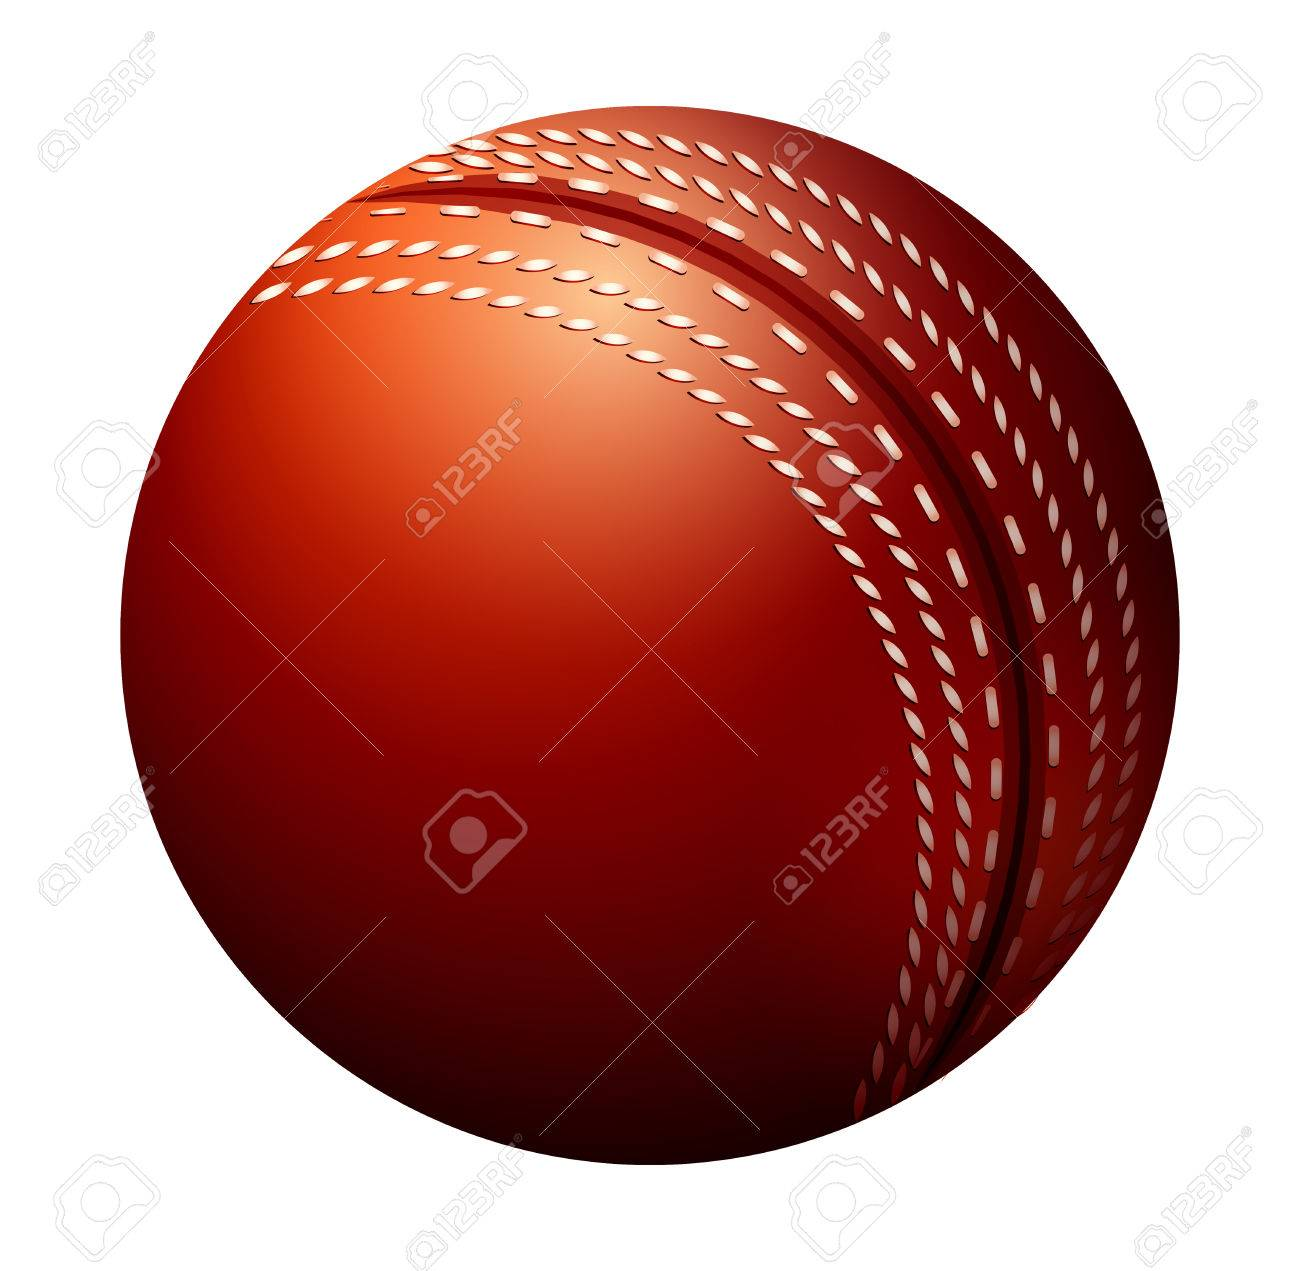 Single Cricket Ball Made Of Leather